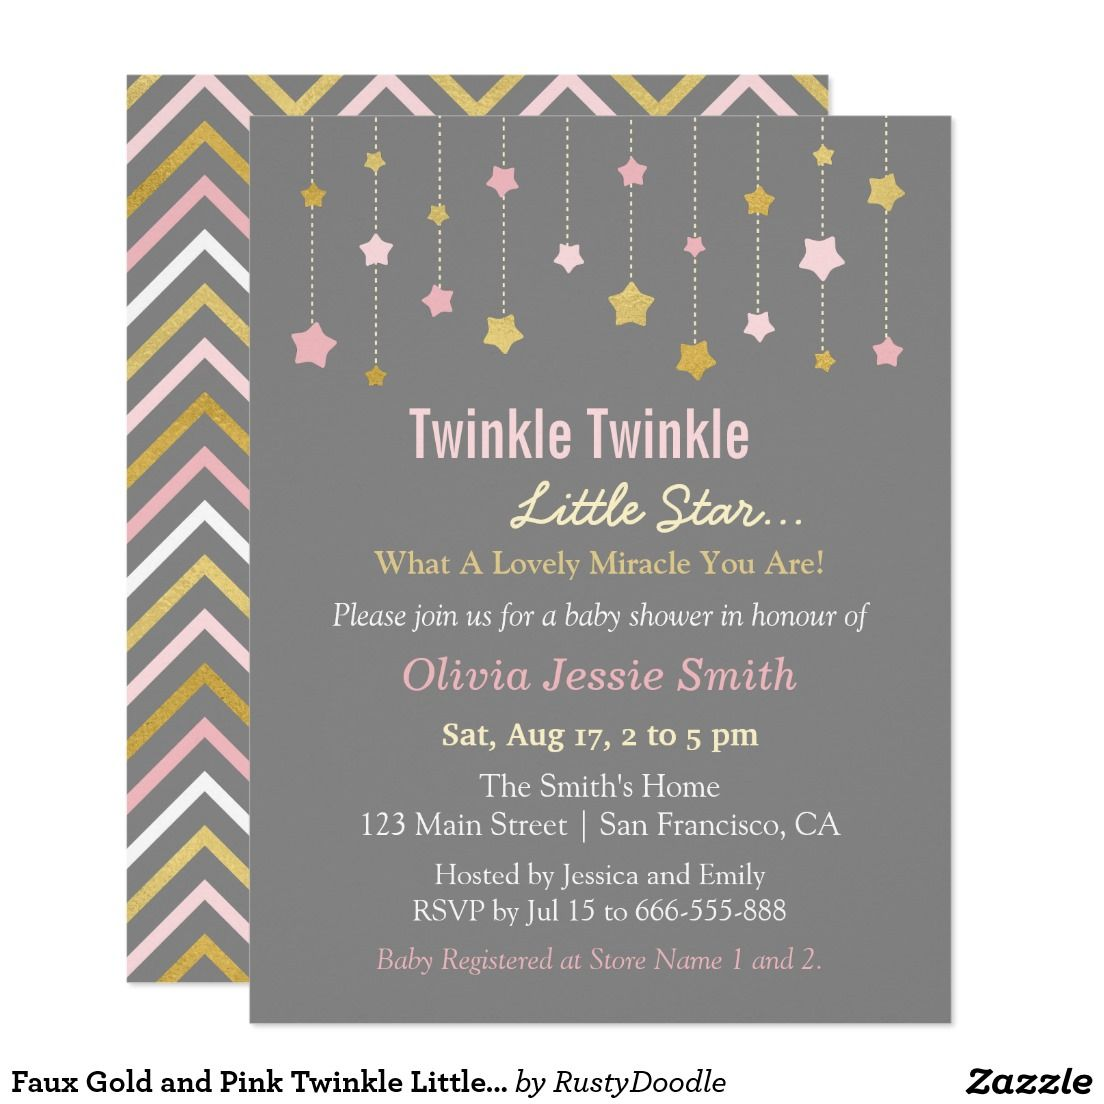 faux gold and pink twinkle little star baby shower card | pink, Baby shower invitations